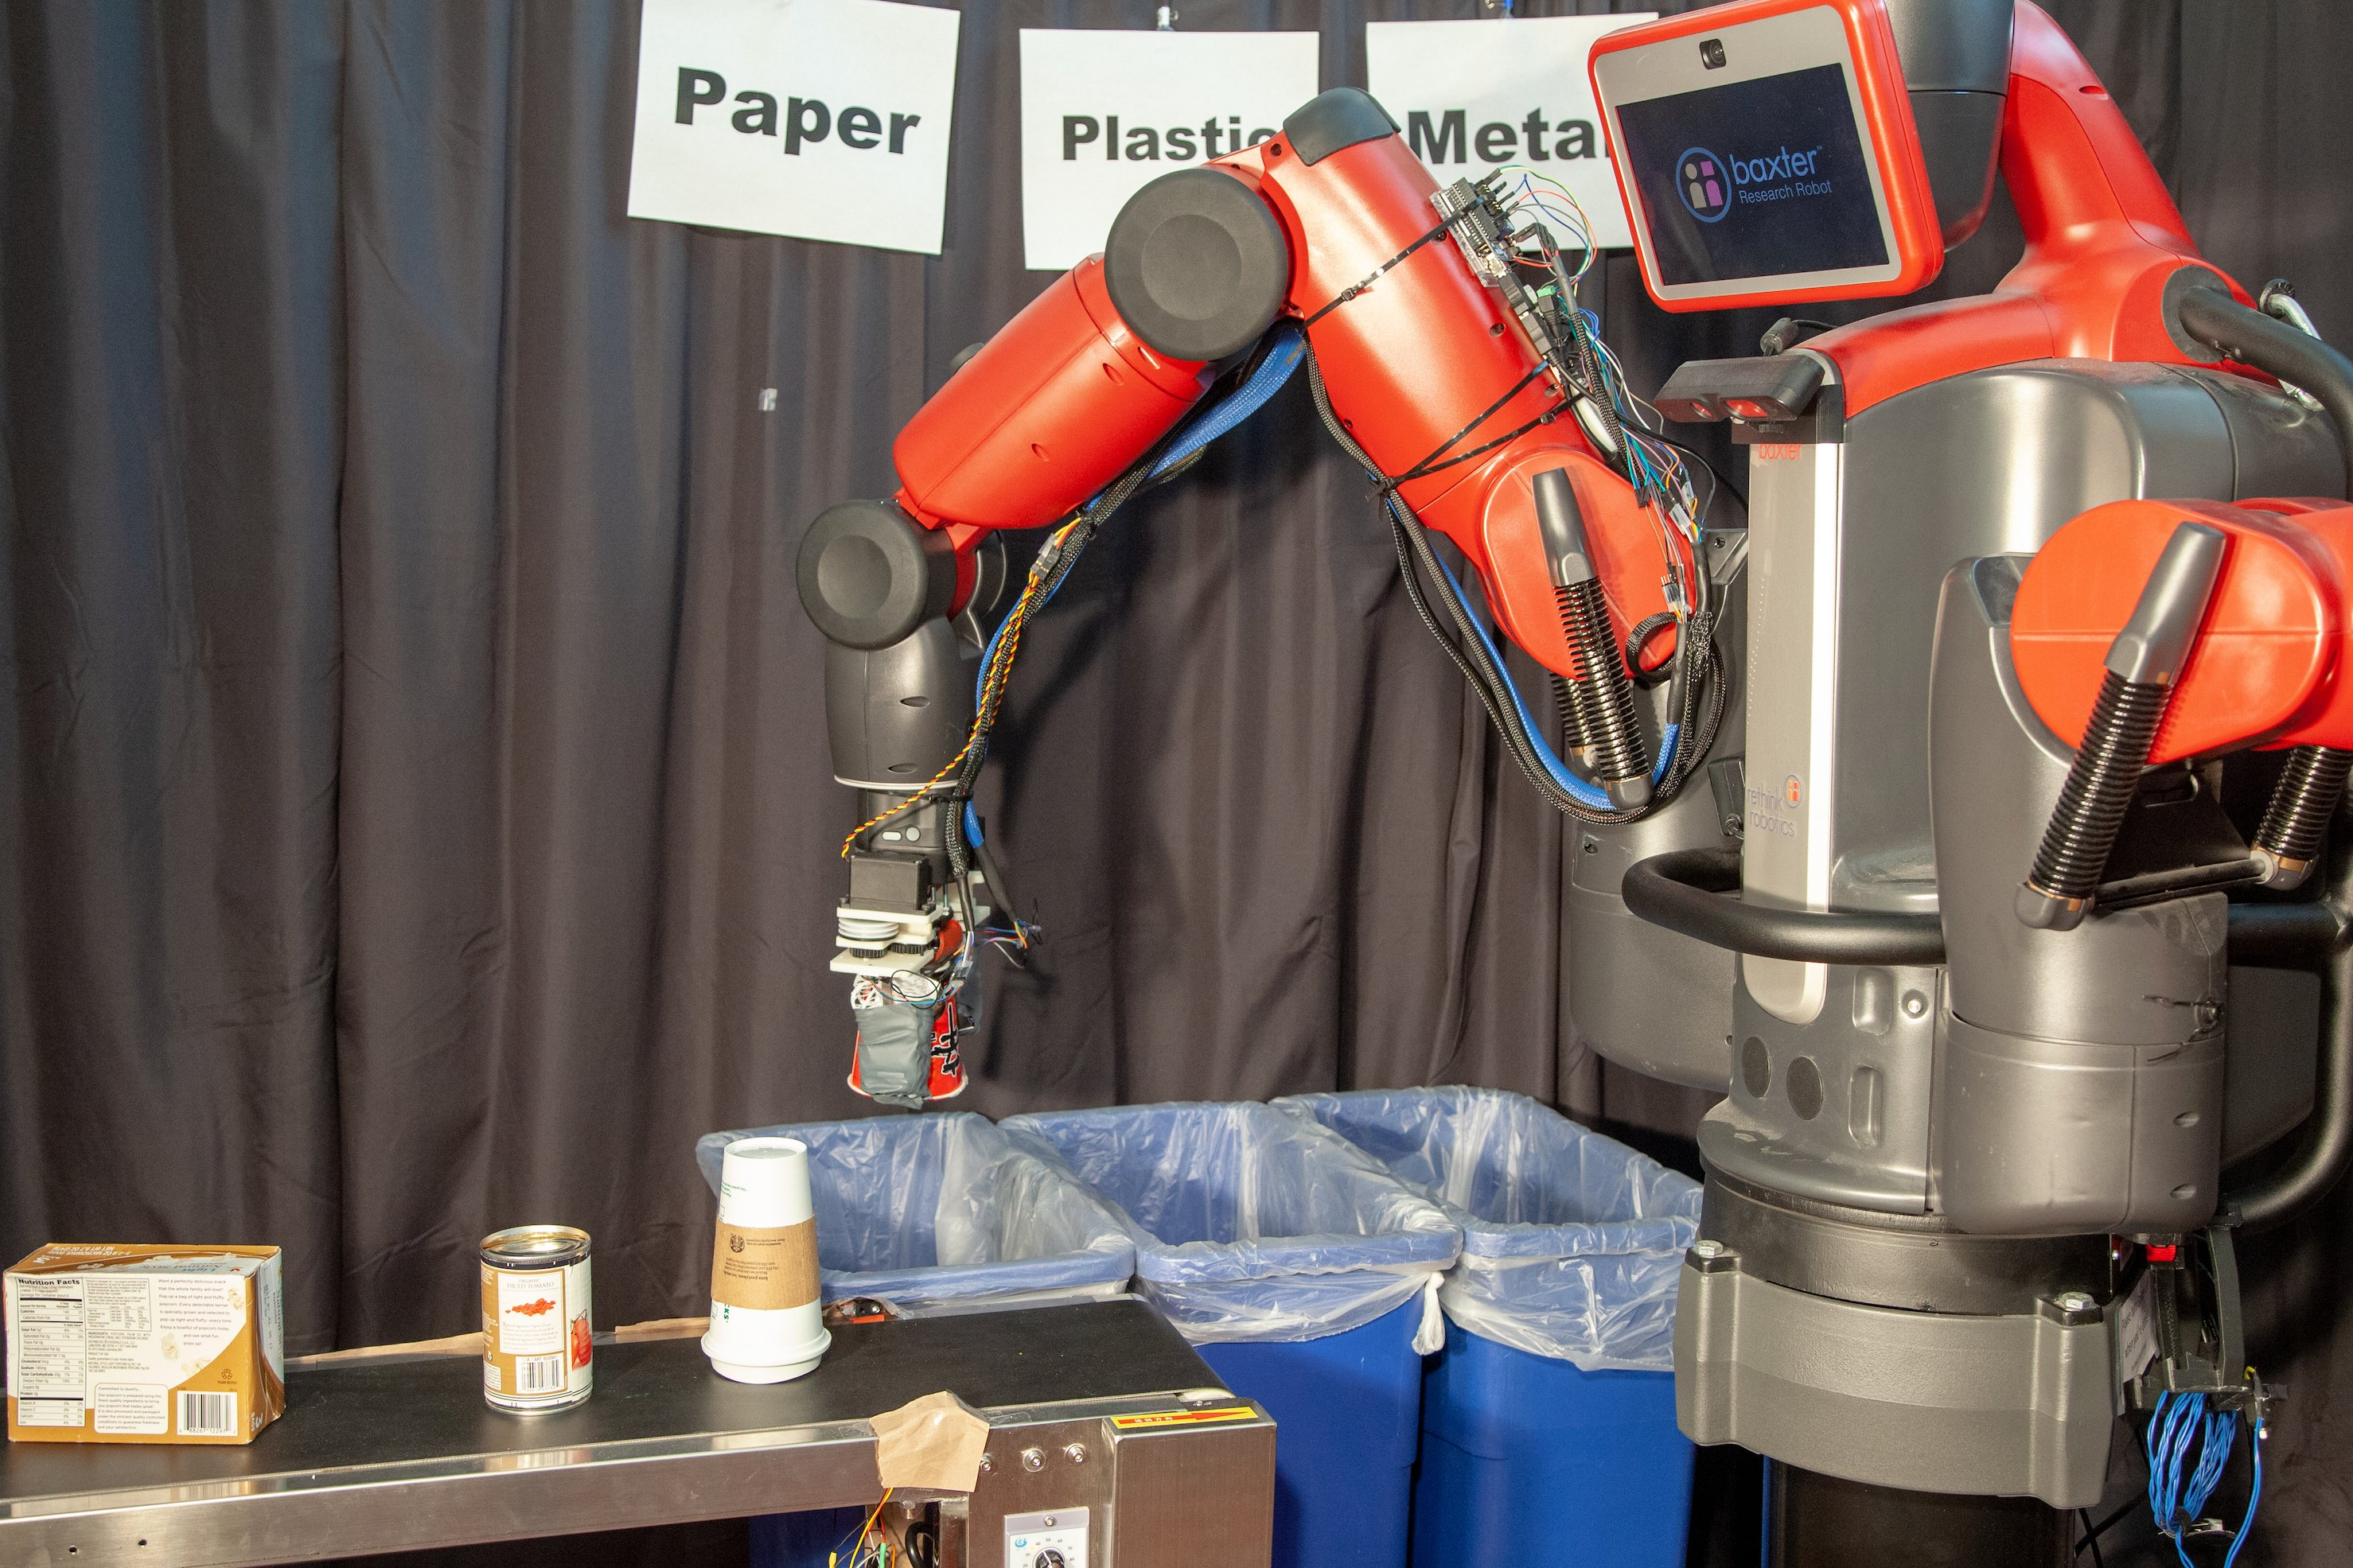 MIT's Recycling Robot 'Rocycle' Can Detect Paper, Plastic, and Metal By Touch